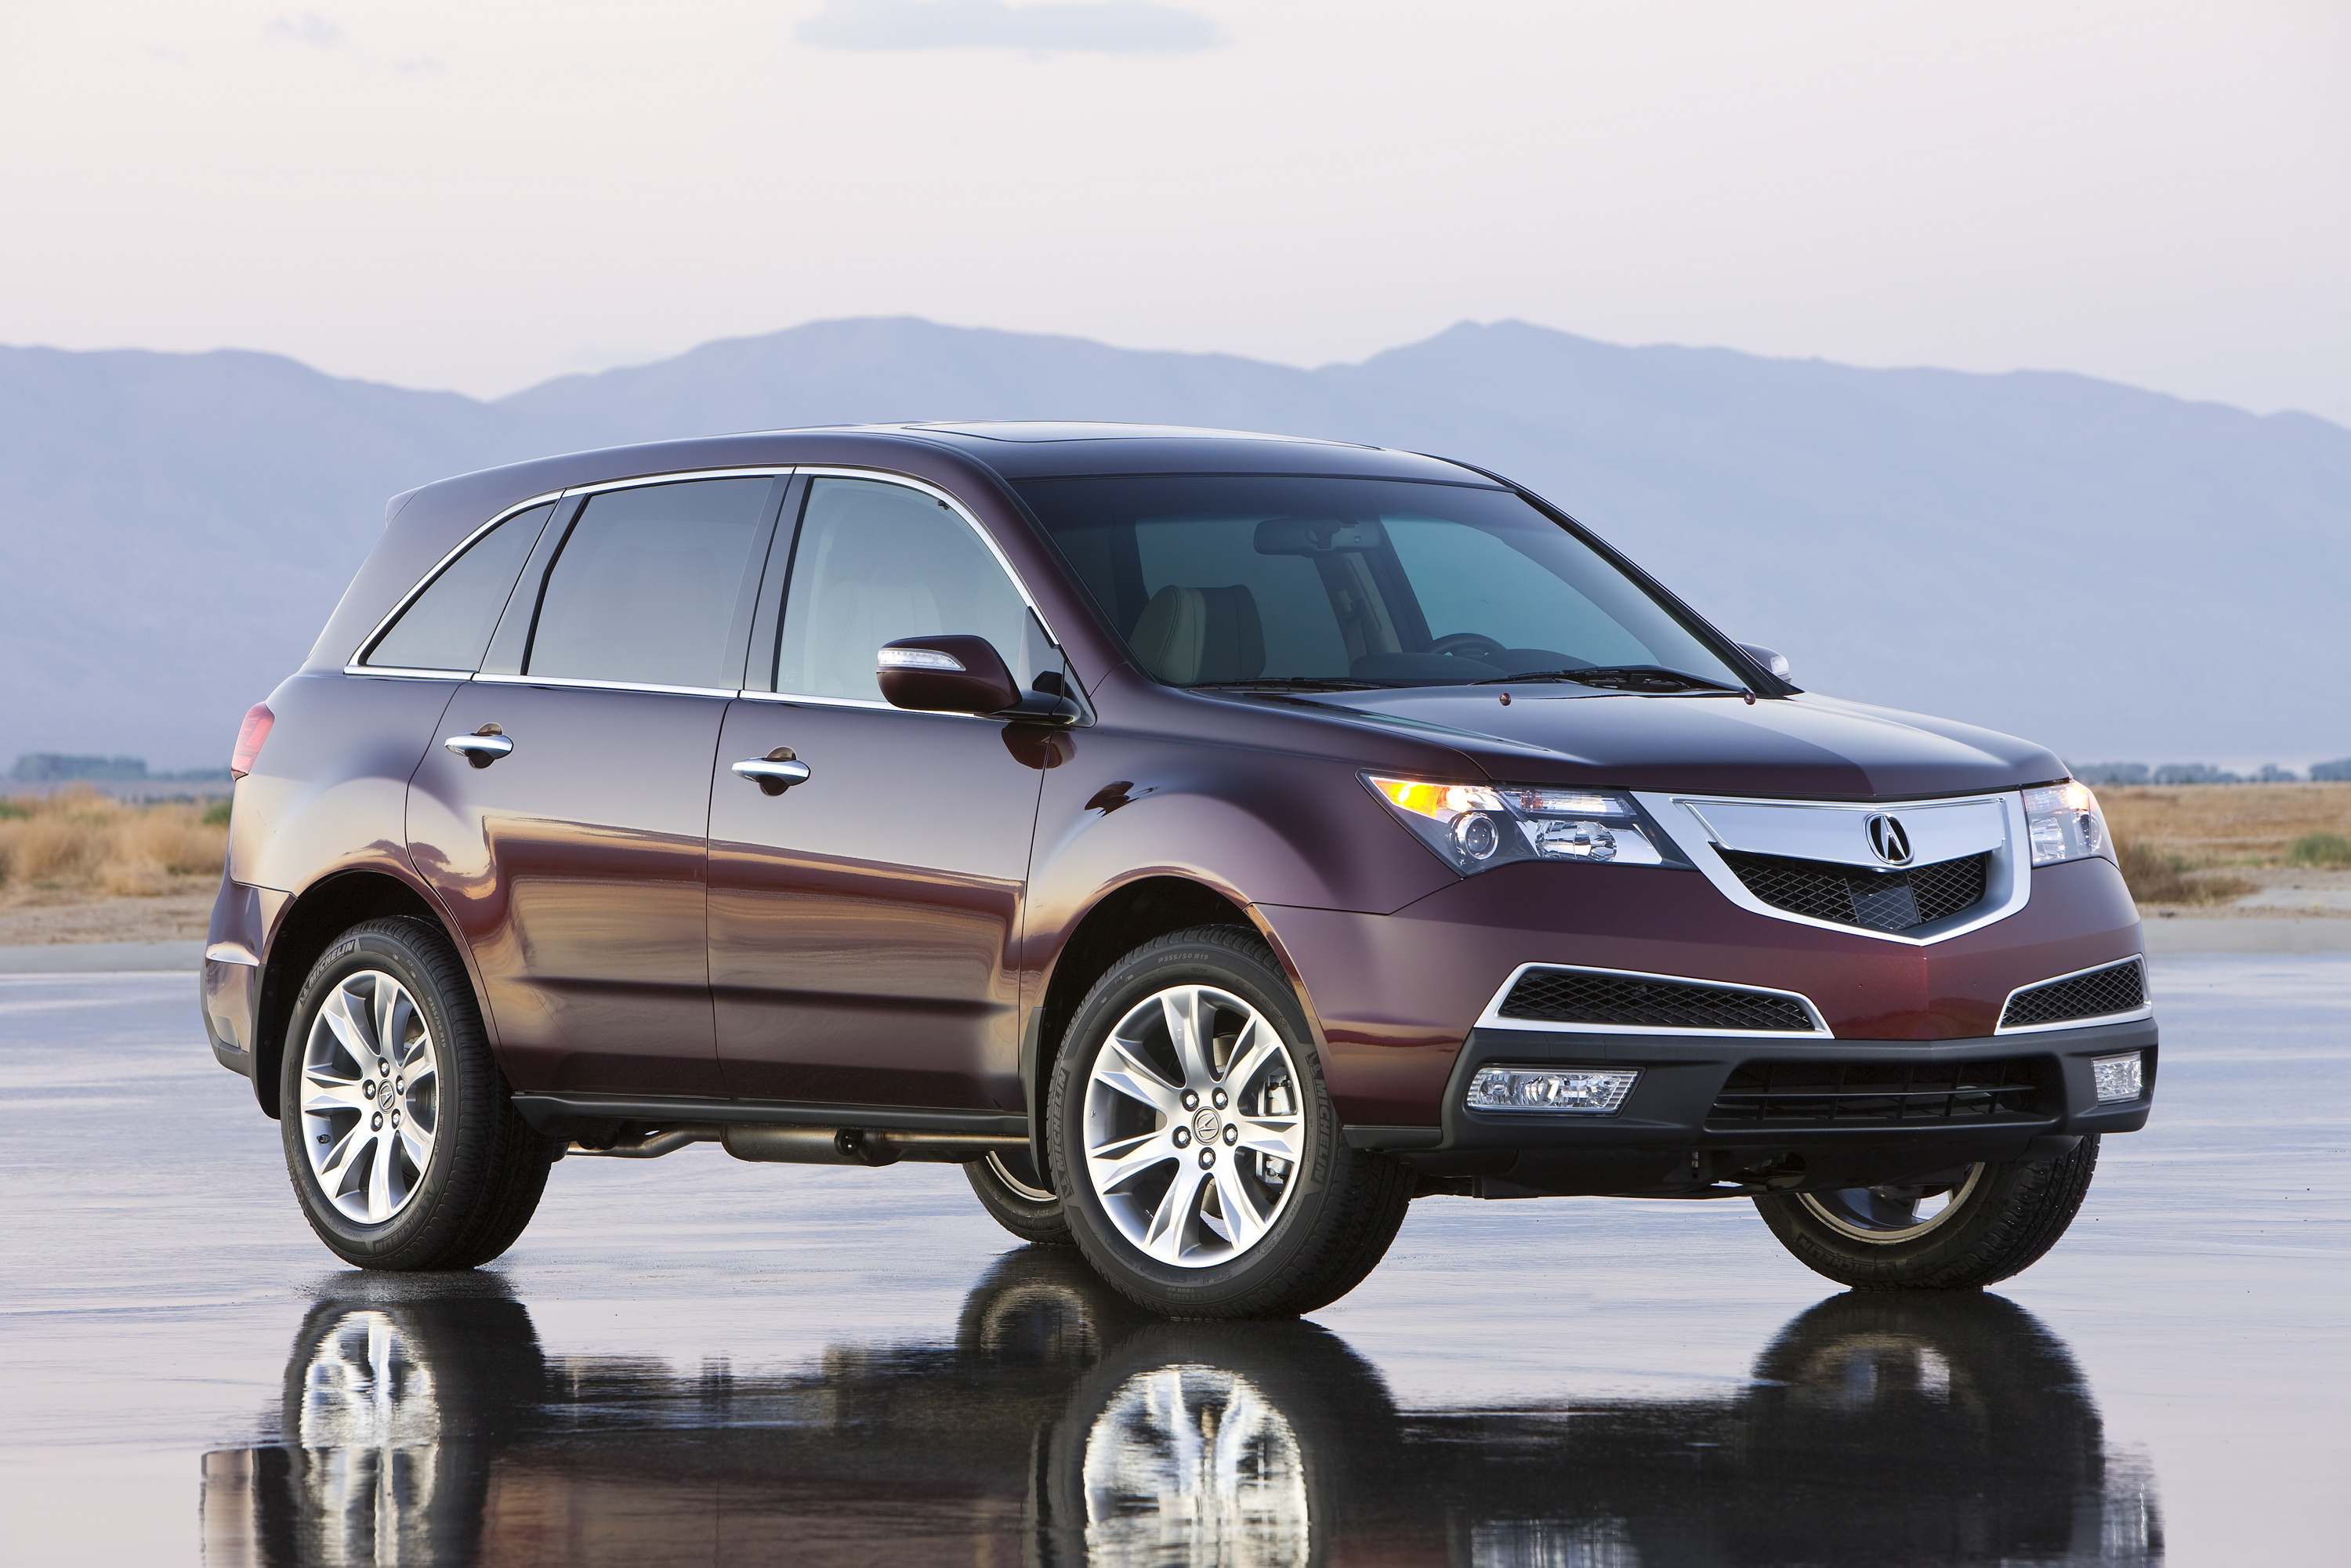 mdx cars pictures of wonderful information new acura amp specs